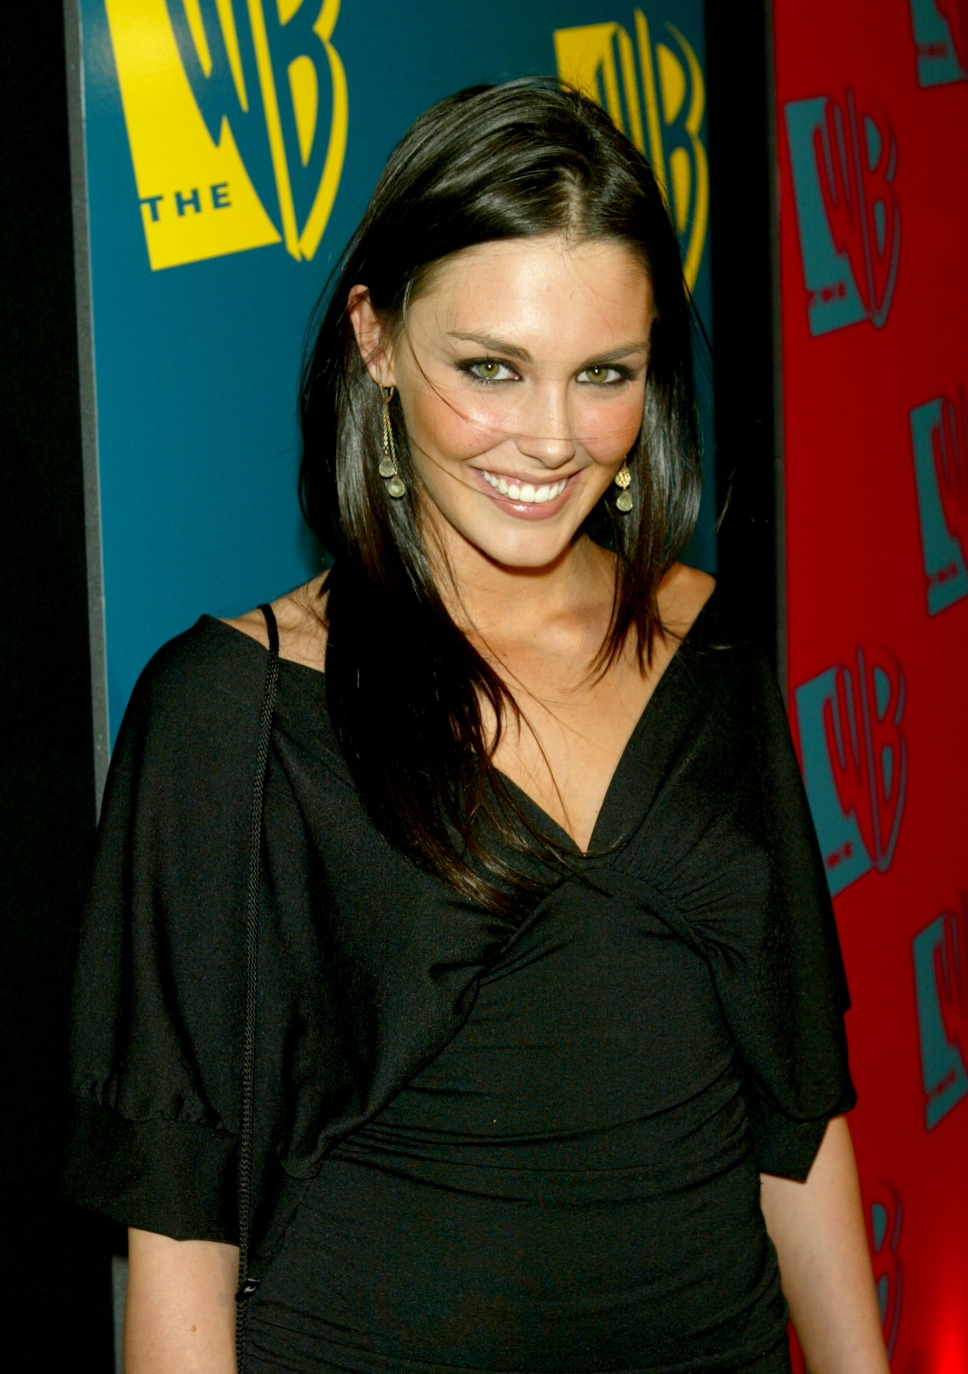 Taylor Cole Pictures. Hotness Rating = Unrated